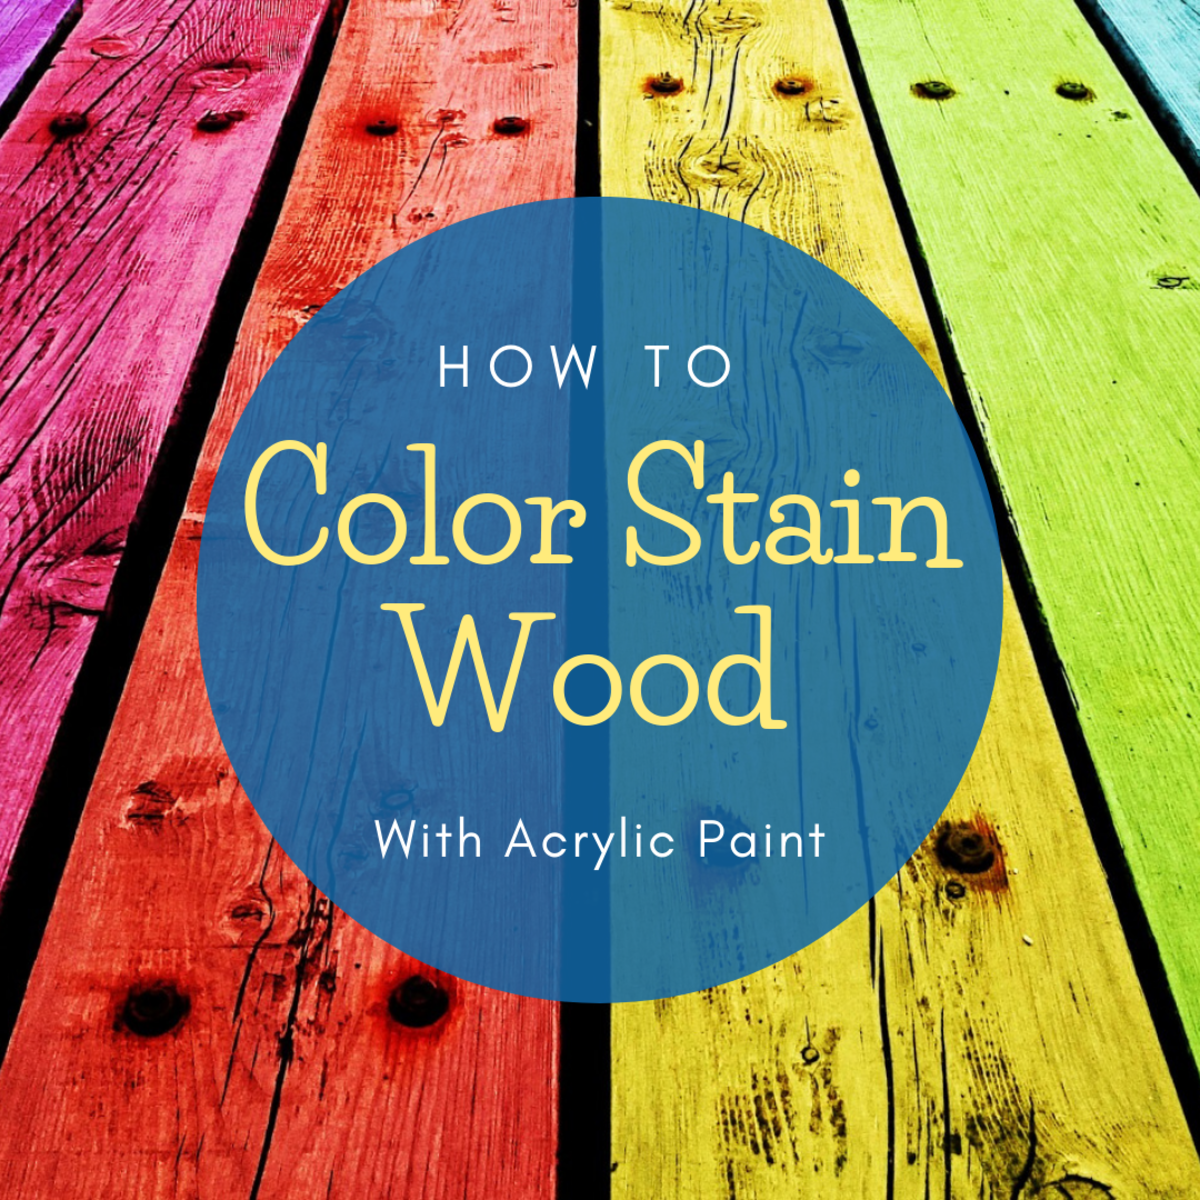 With a color stain, you can hold the natural beauty of wood grain while also adding flair to your finished product.